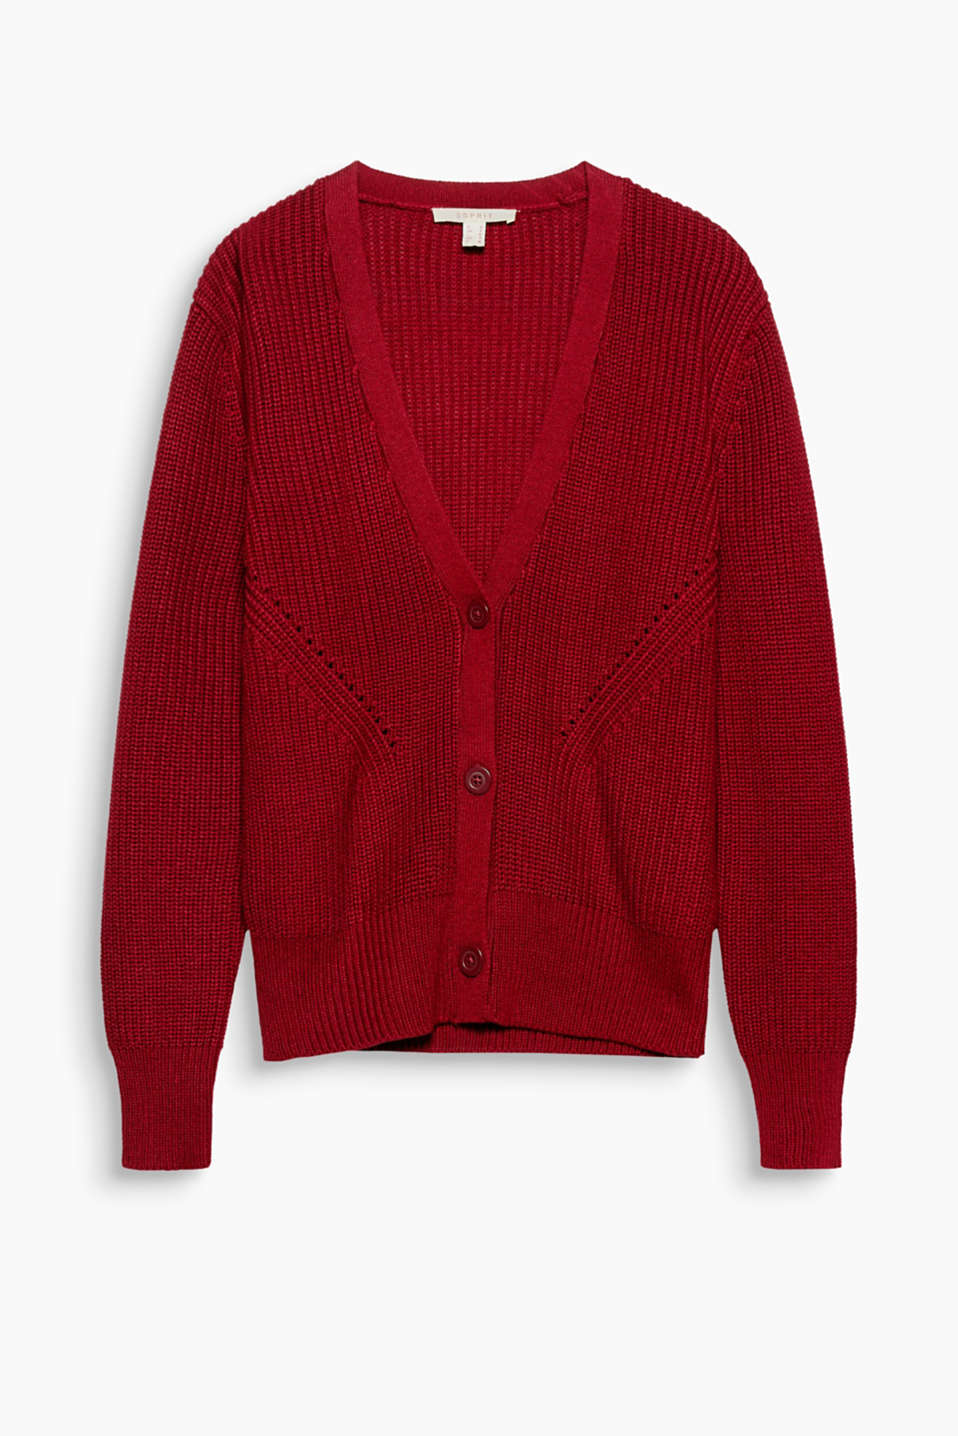 This soft, shape-retentive cardigan in a chunkier knit has decorative shaping effects that give it a stylish kick